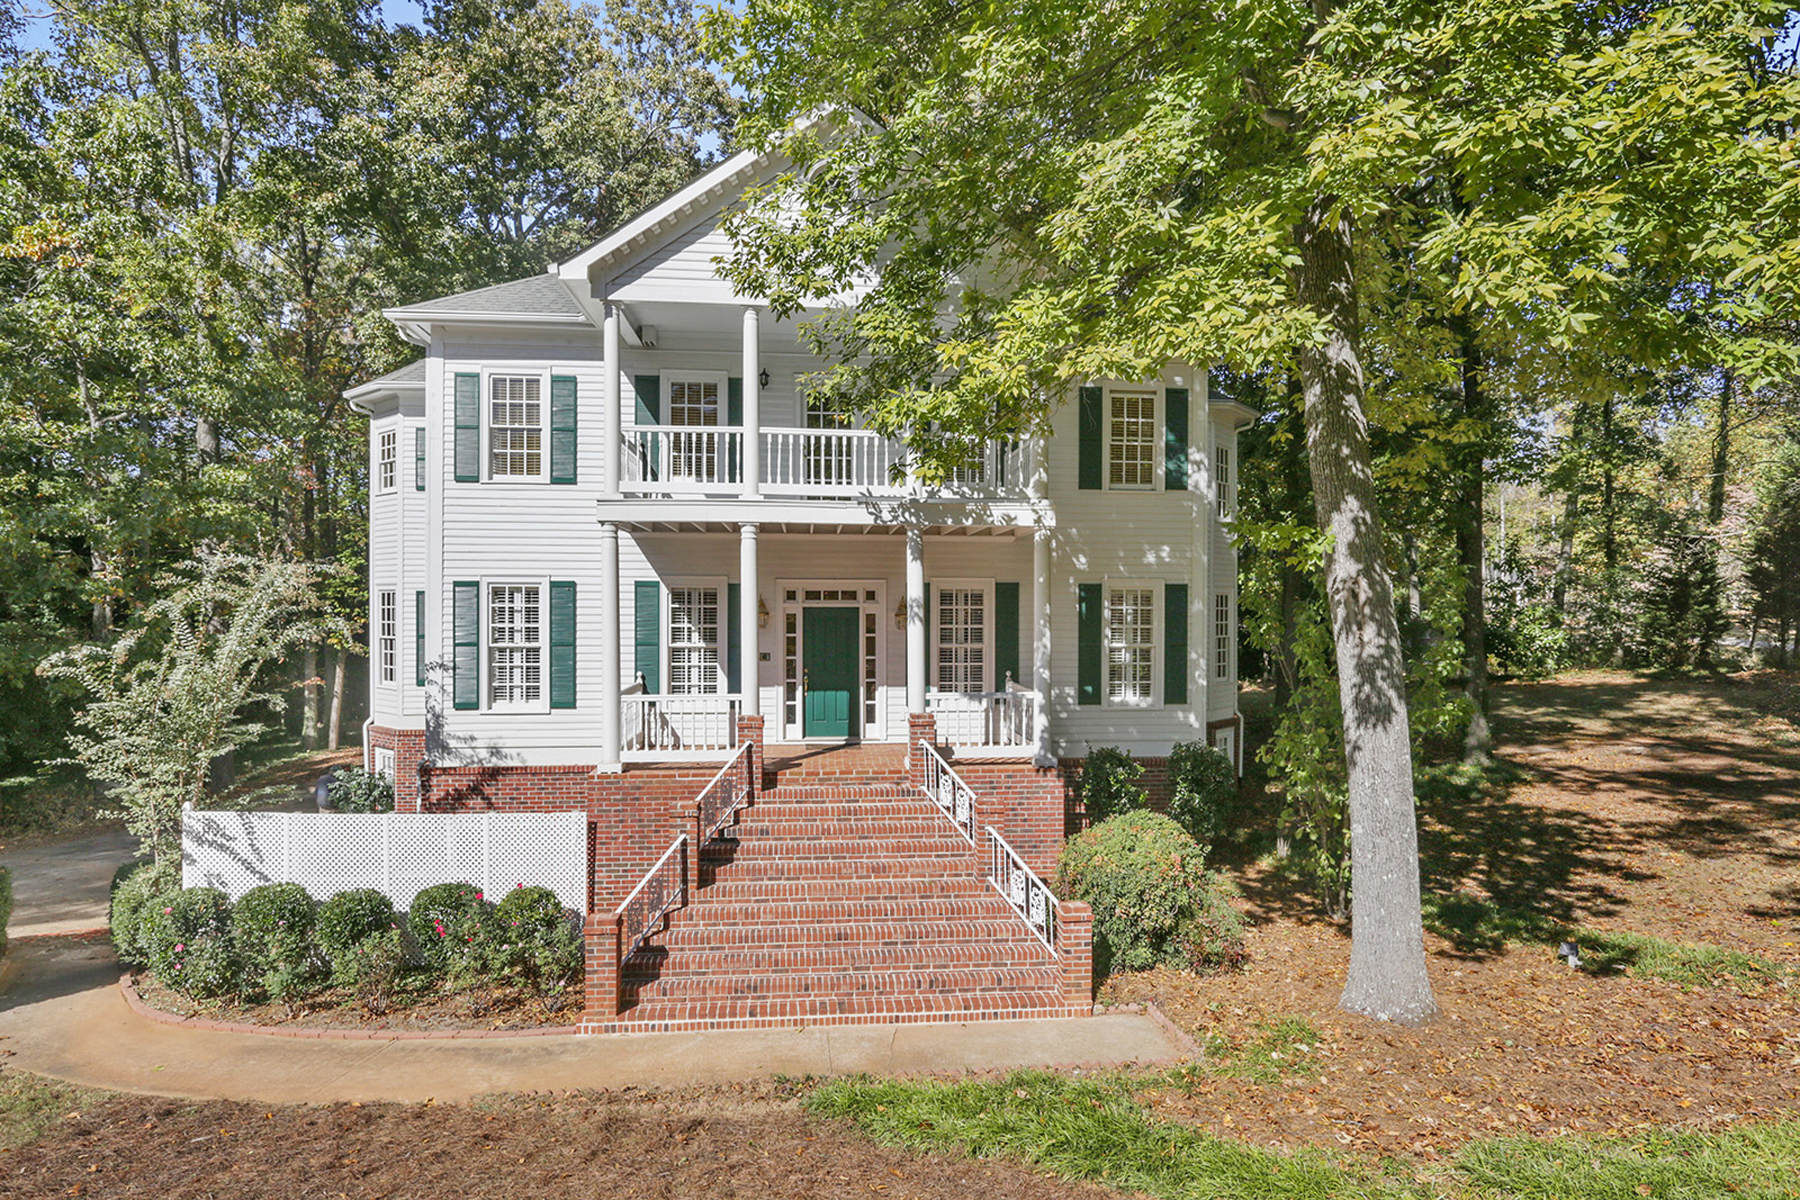 Vivienda unifamiliar por un Venta en Gorgeous Antebellum Reproduction 101 Old Mountain Road Powder Springs, Georgia, 30127 Estados Unidos